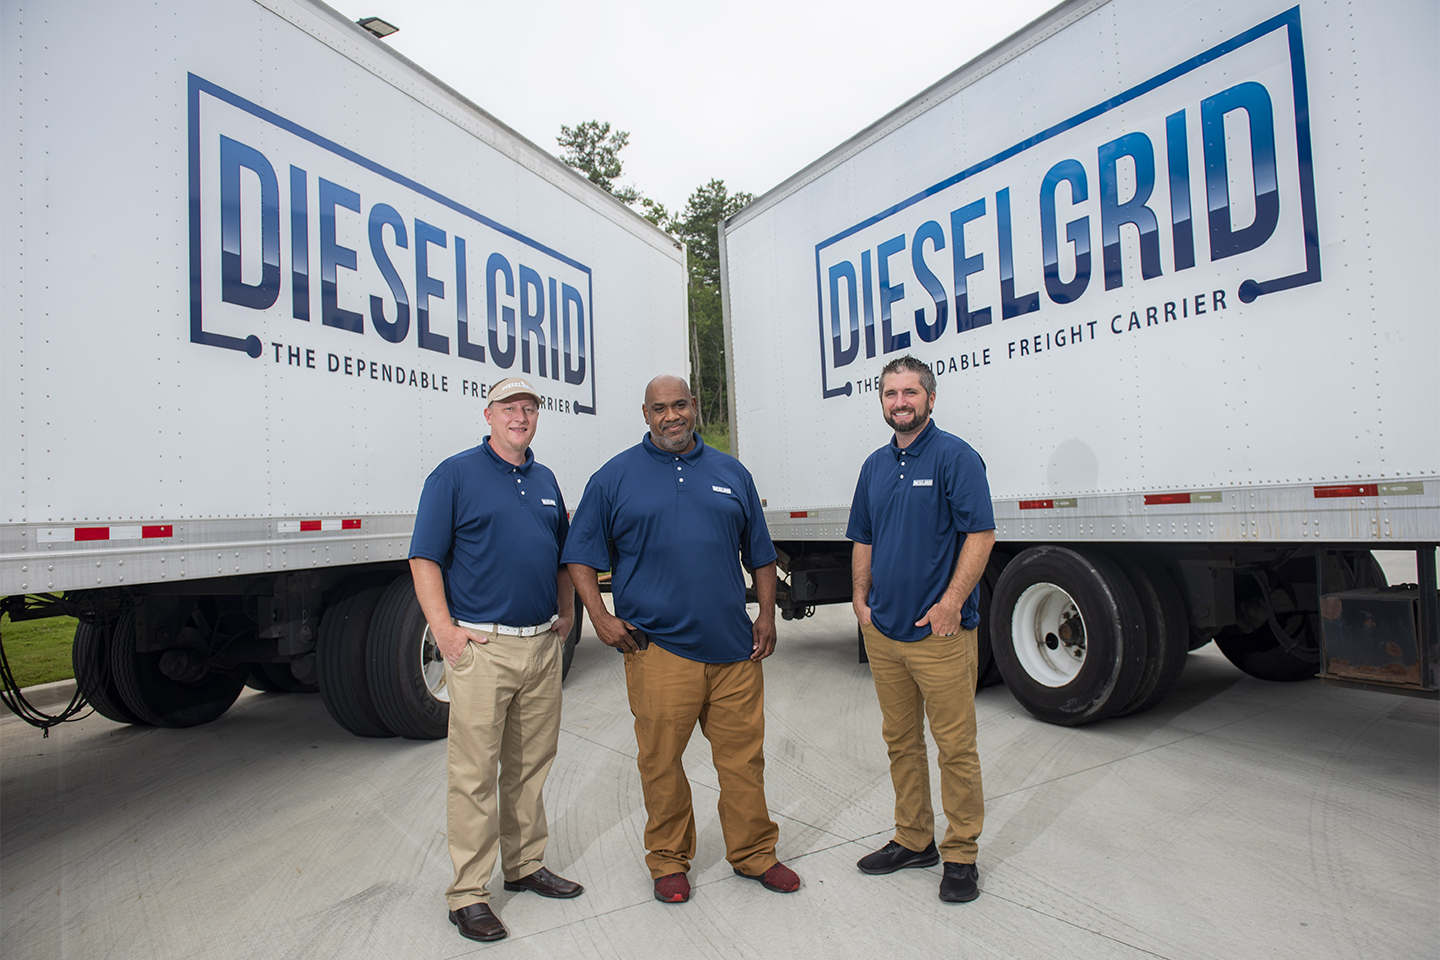 Three men stand in front of two semi-trucks with the DIESELGRID logo